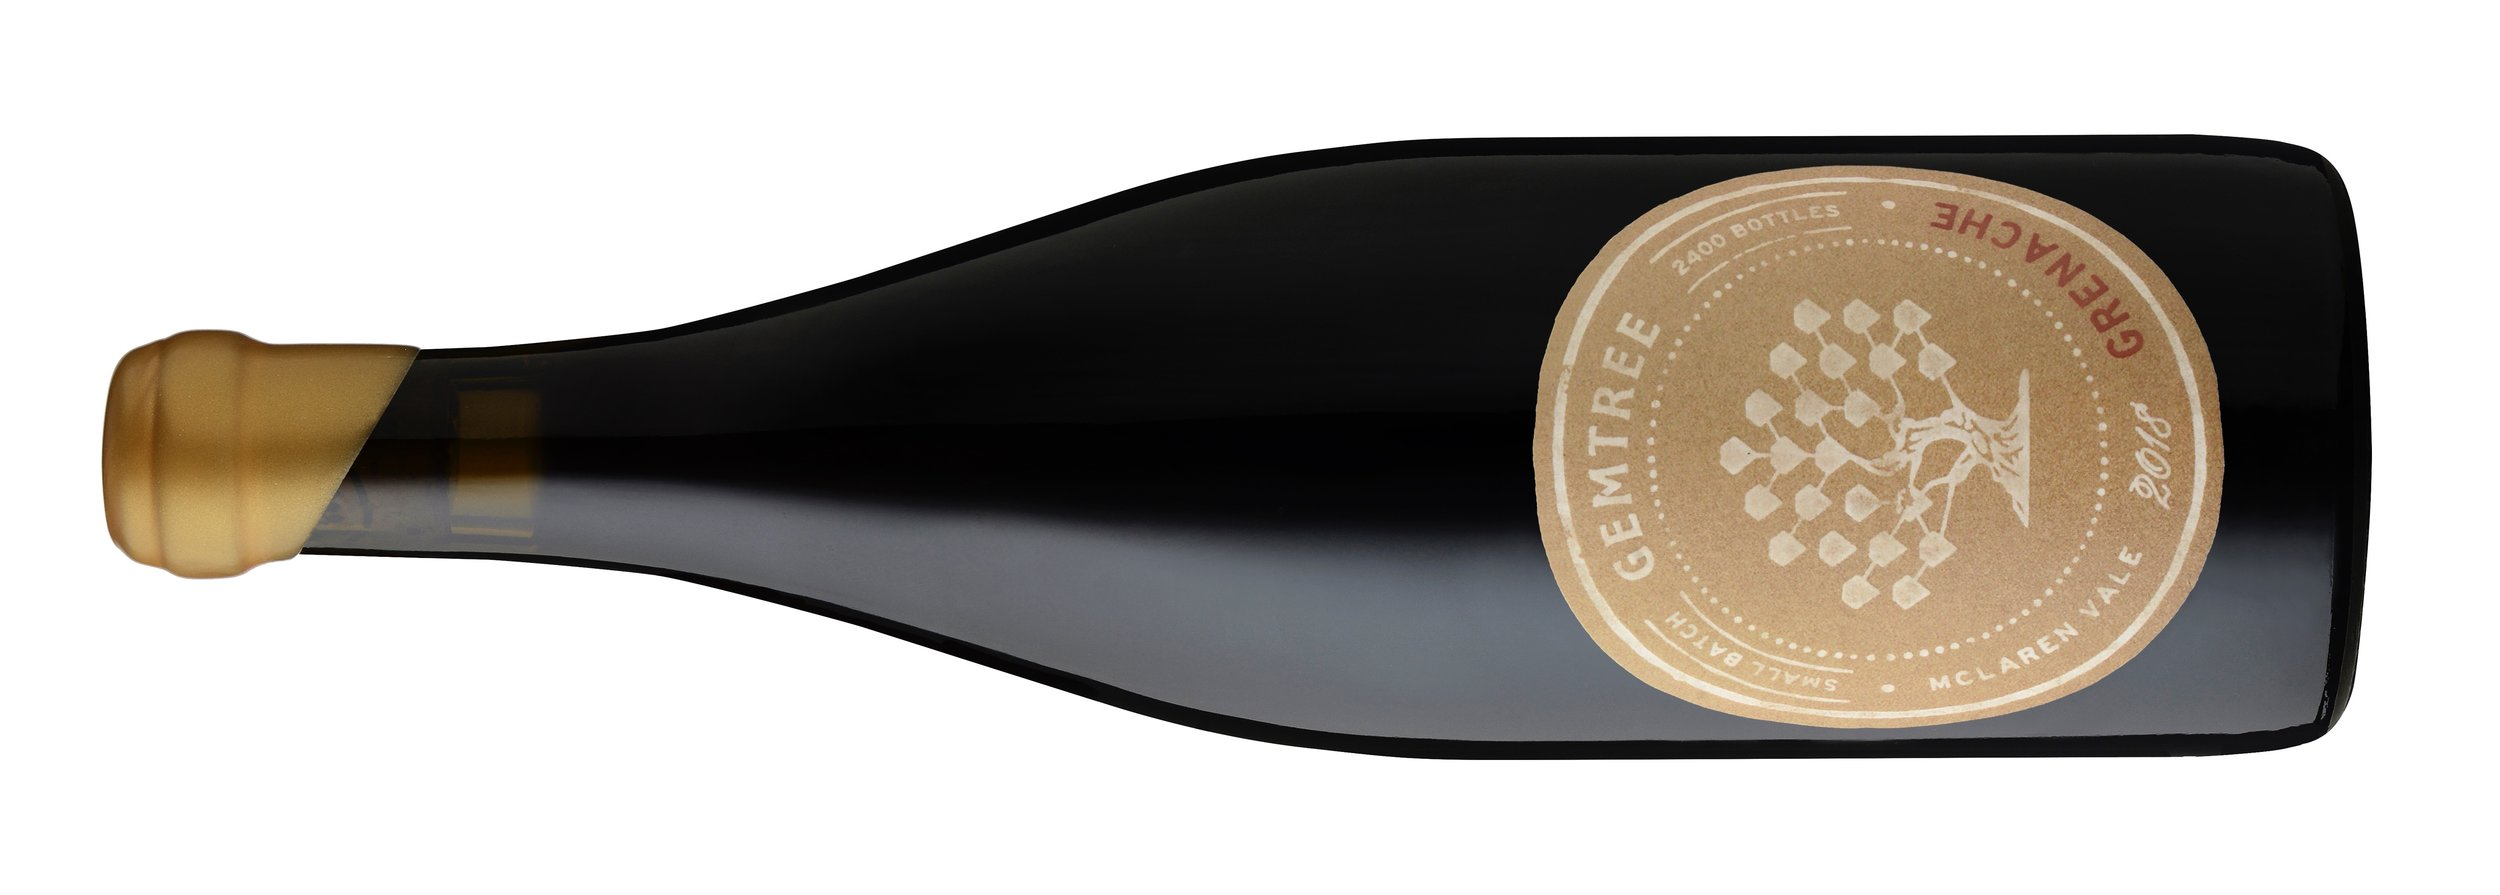 GEMTREE GRENACHE    ジェームツリー グルナッシュ   マクラーンヴィイル, マクラーンフラット ¥6,500 2018, 750ml, 14.5%  オーガニック・バイオダイナミック  This is a radically alternative paradigm to many of this estate's wines. Succulent and expansive across the palate with red currant, pomegranate, strawberry and flavours of cherry soused in spirit, this medium-bodied, delicately textured grenache is given a rasp of briar, an inflection of reduction and a lick of cardamom and exotic clove on the finish. From both organic and fully fledged biodynamically farmed vineyards, this is very good and brimming with drinkability.  このエステートで造られる多くのワインのうち、先進的なモデルでしょう。ジューシーで広がりのある、 赤スグリ、ザクロ、イチゴ、リキュールを使ったチェリーソースの香り。ミディアムボディで、繊細なテクスチャーのグルナッシュ。低木のニュアンス、抑揚があり、フィニッシュにはカルダモンとエキゾチックなクローブの香り。 オーガニックヴィンヤードと、本格的なビオディナミ栽培を行なっているヴィンヤードの両方のぶどうを使用。非常に豊満で、さらに飲みやすいワインです。